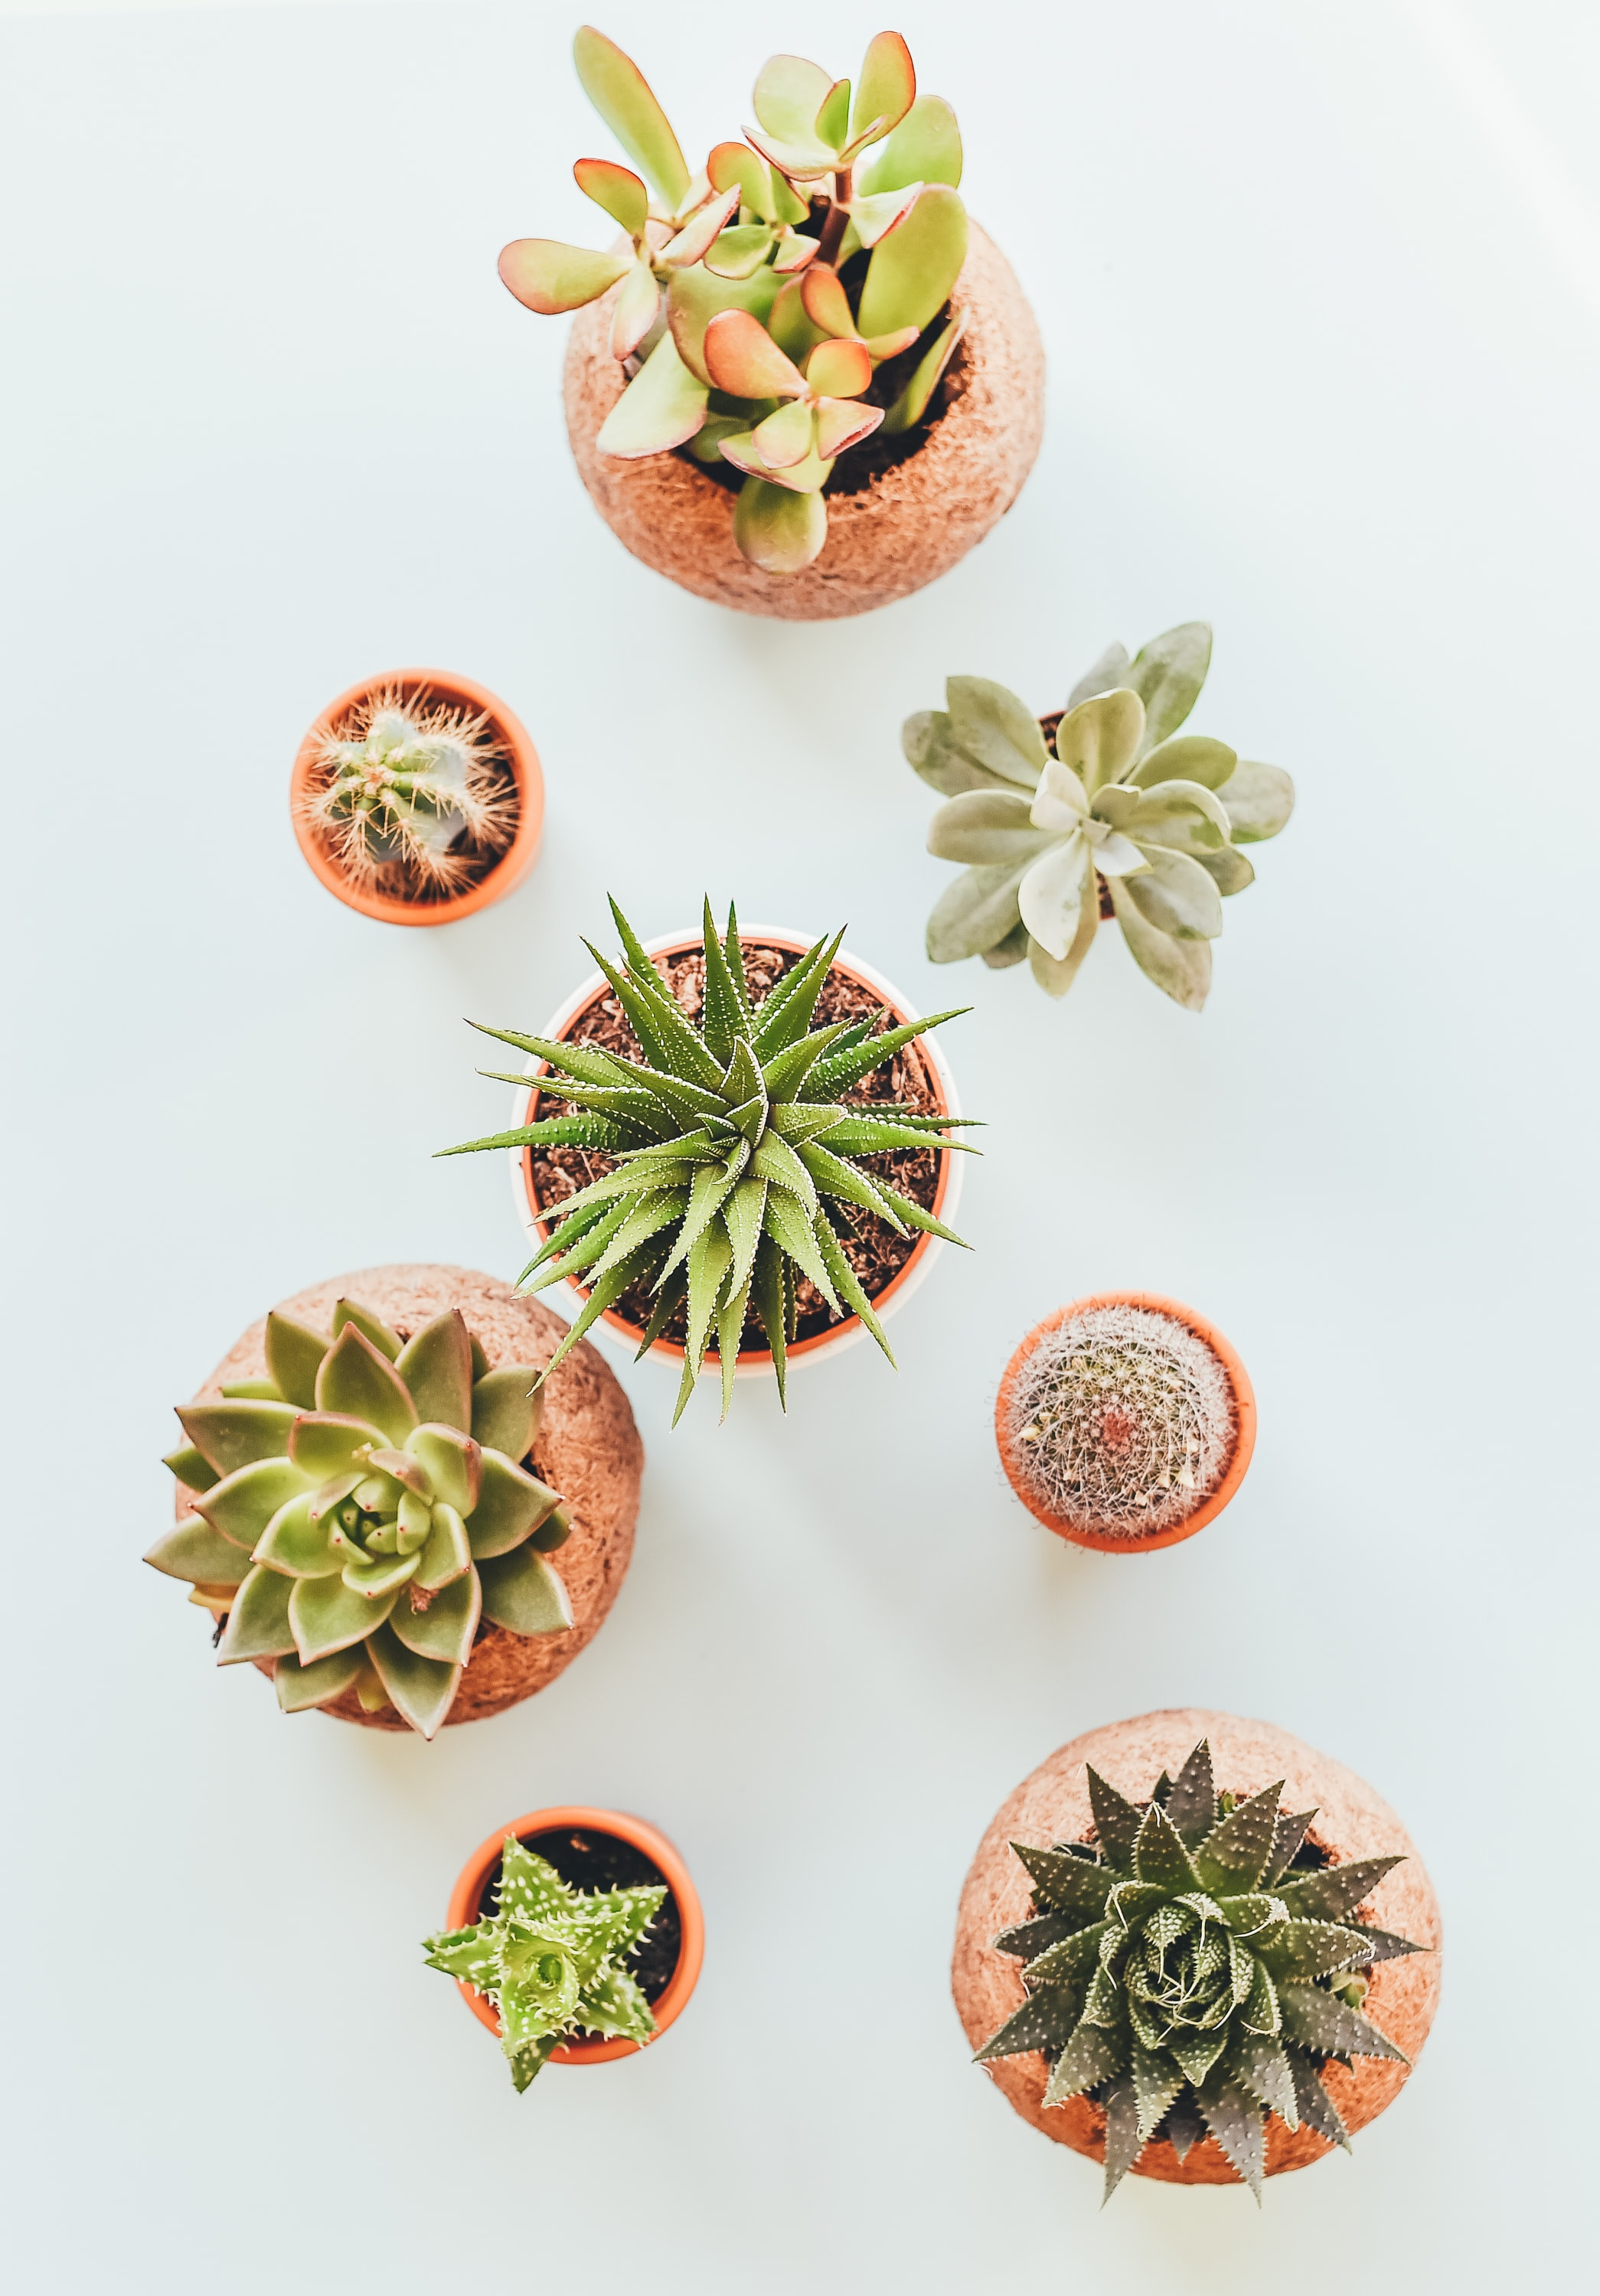 100 Succulent Pictures Download Free Images On Unsplash